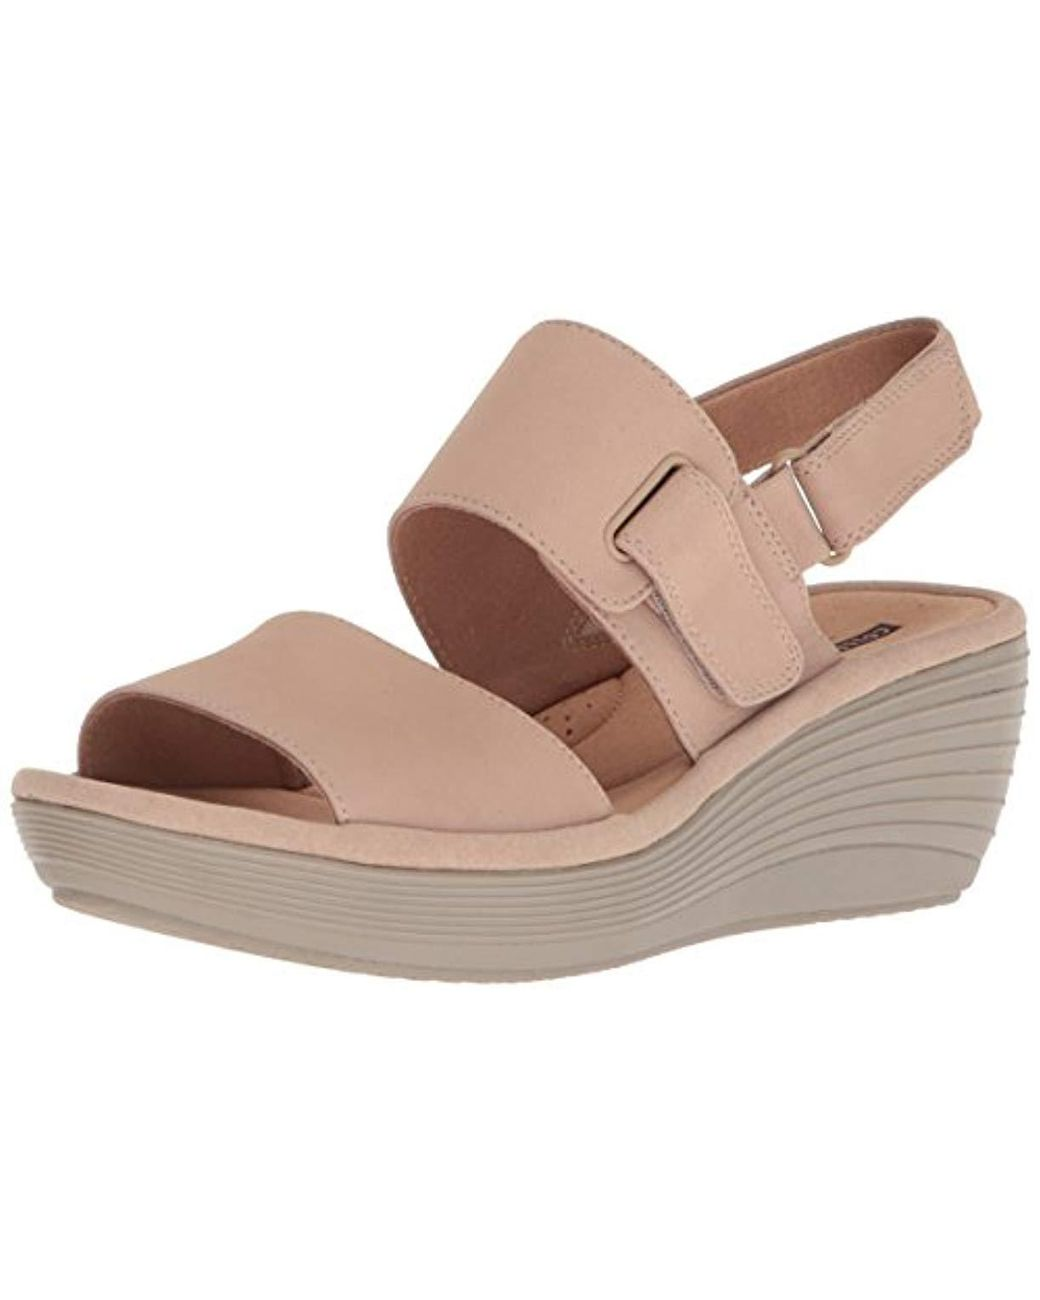 293b6da8c78f Lyst - Clarks Reedly Breen Wedge Sandal - Save 35%